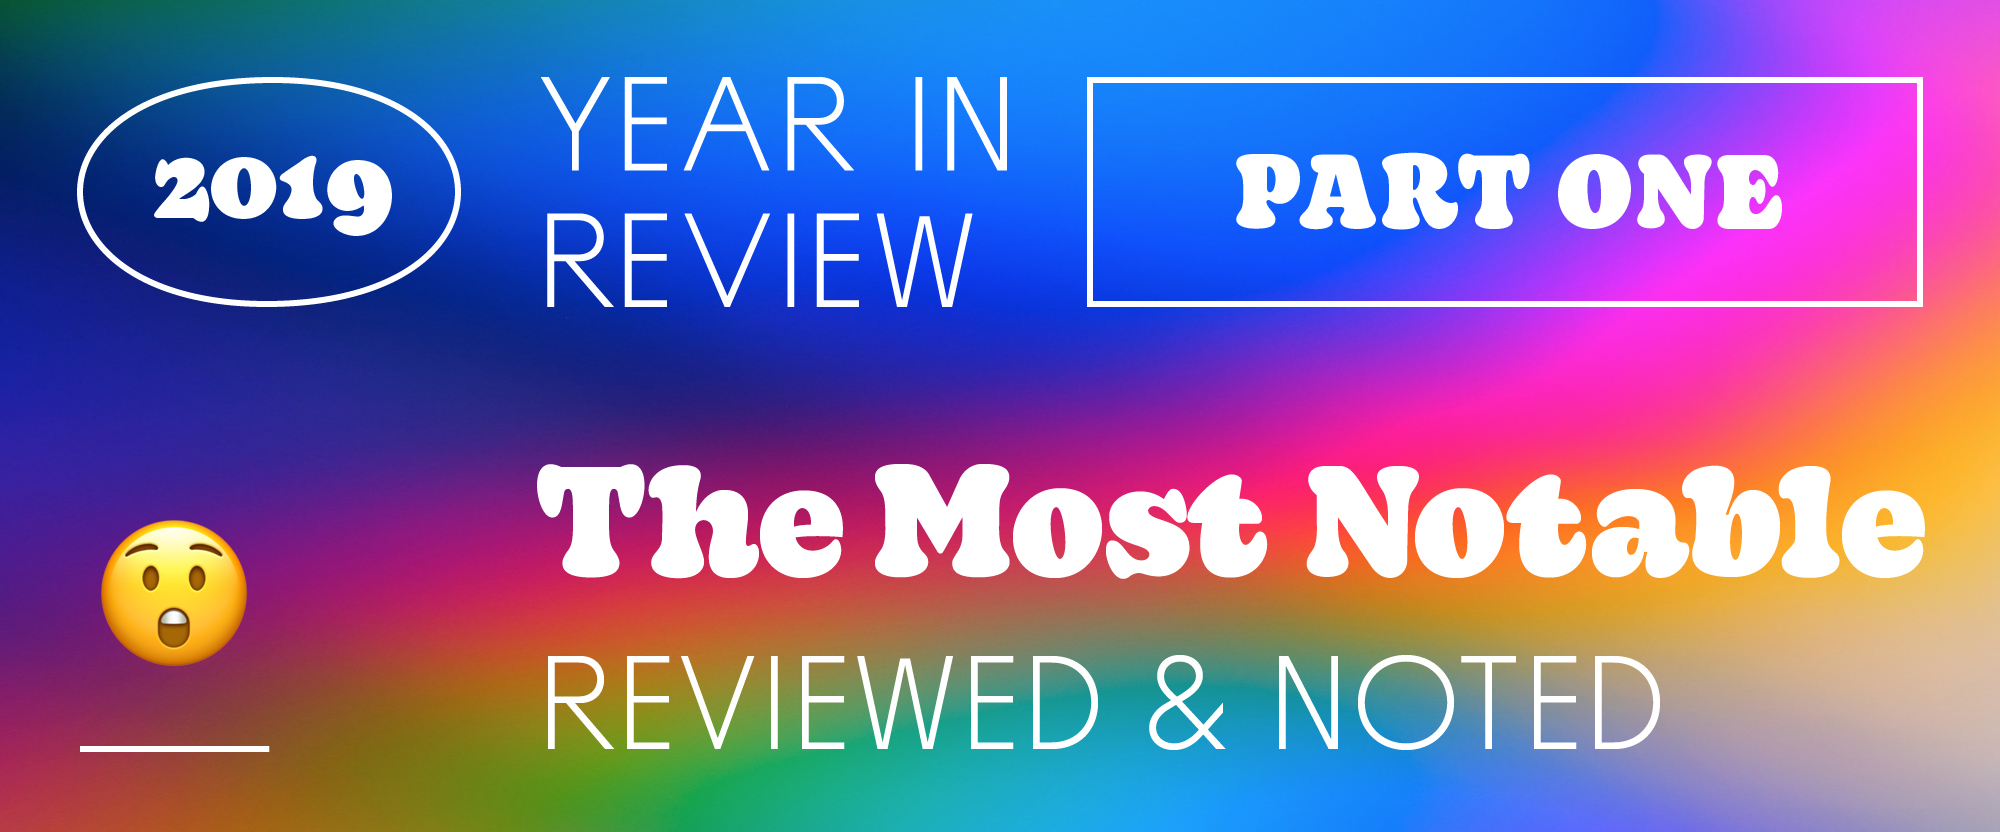 The Best and Worst Identities of 2019, Part 1: The Most Notable Reviewed & Noted